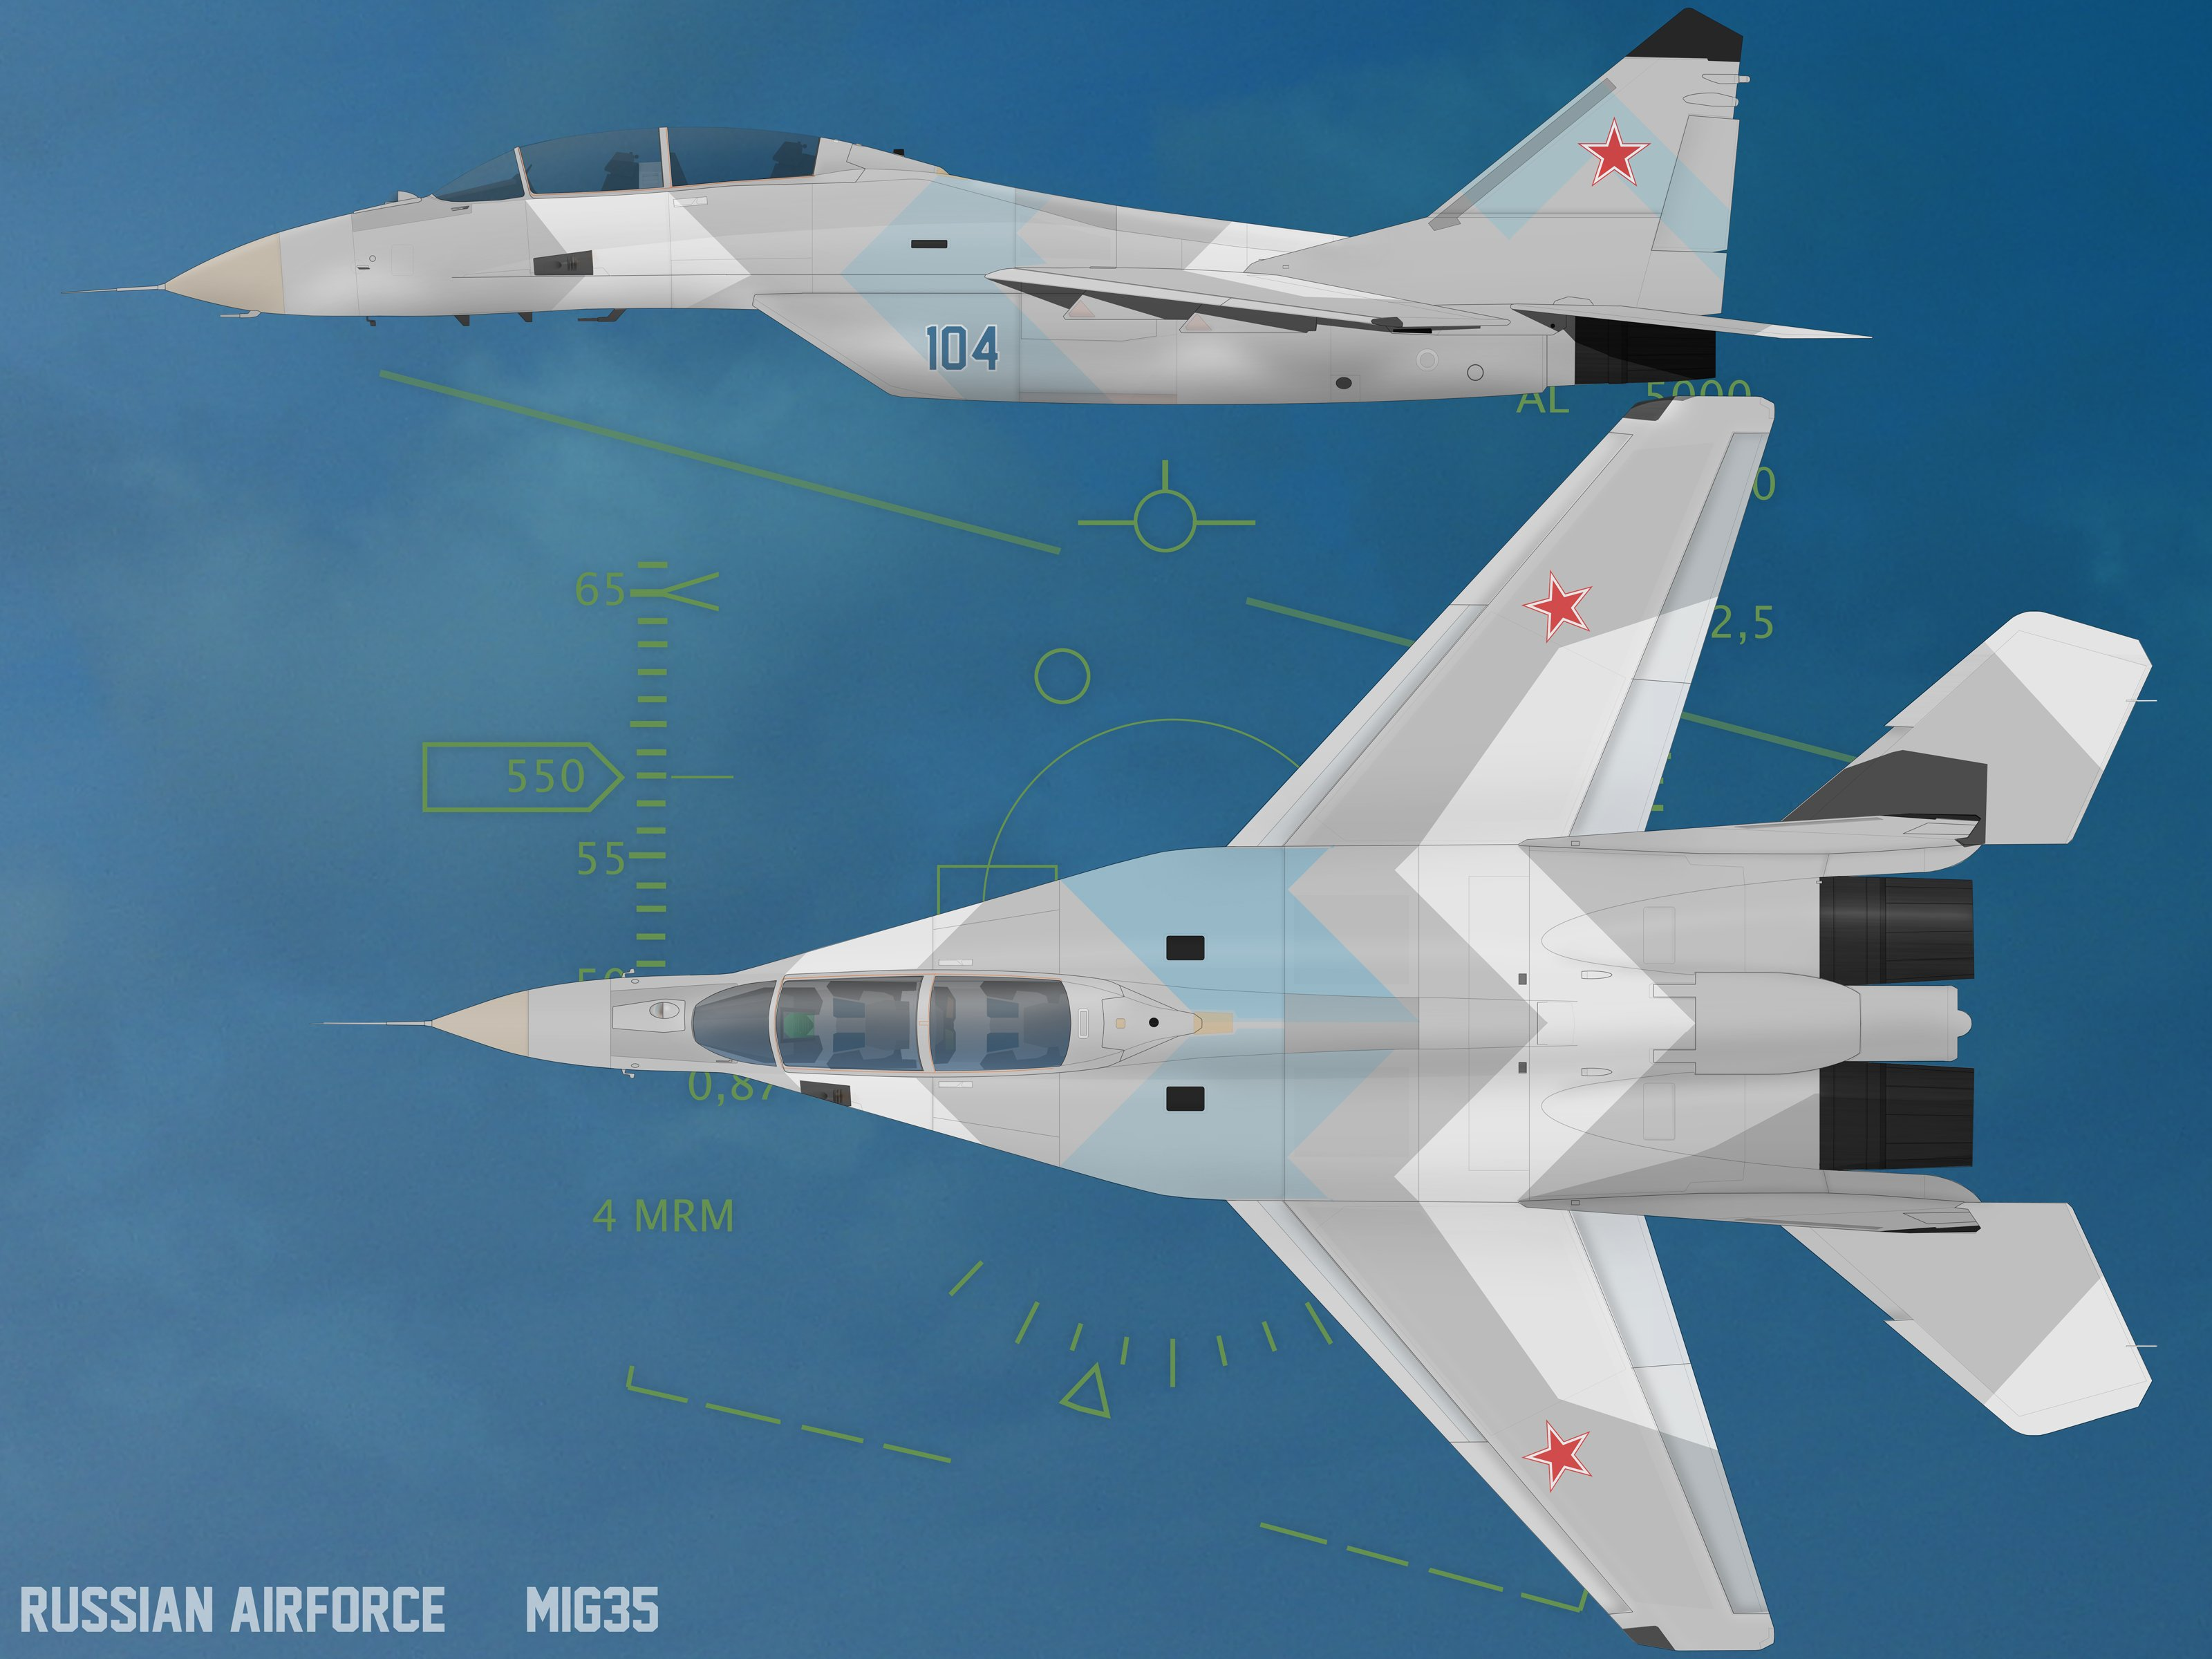 Mig 35 Fighter Jet Russian Airplane Plane Military Mig 17